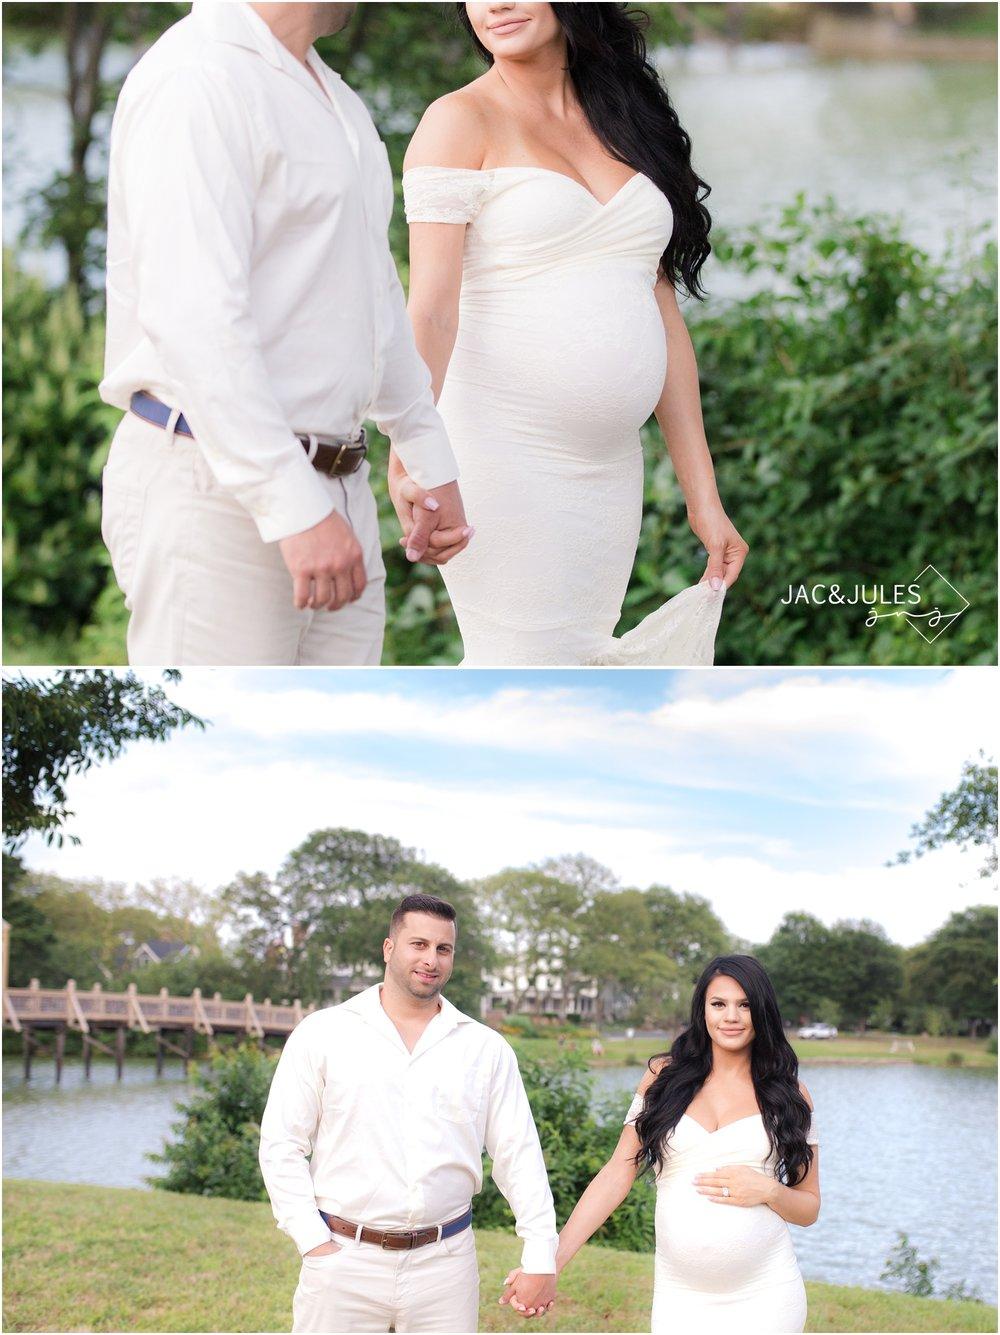 Gorgeous Maternity photos of beautiful pregnant woman and her husband in Spring Lake, NJ.